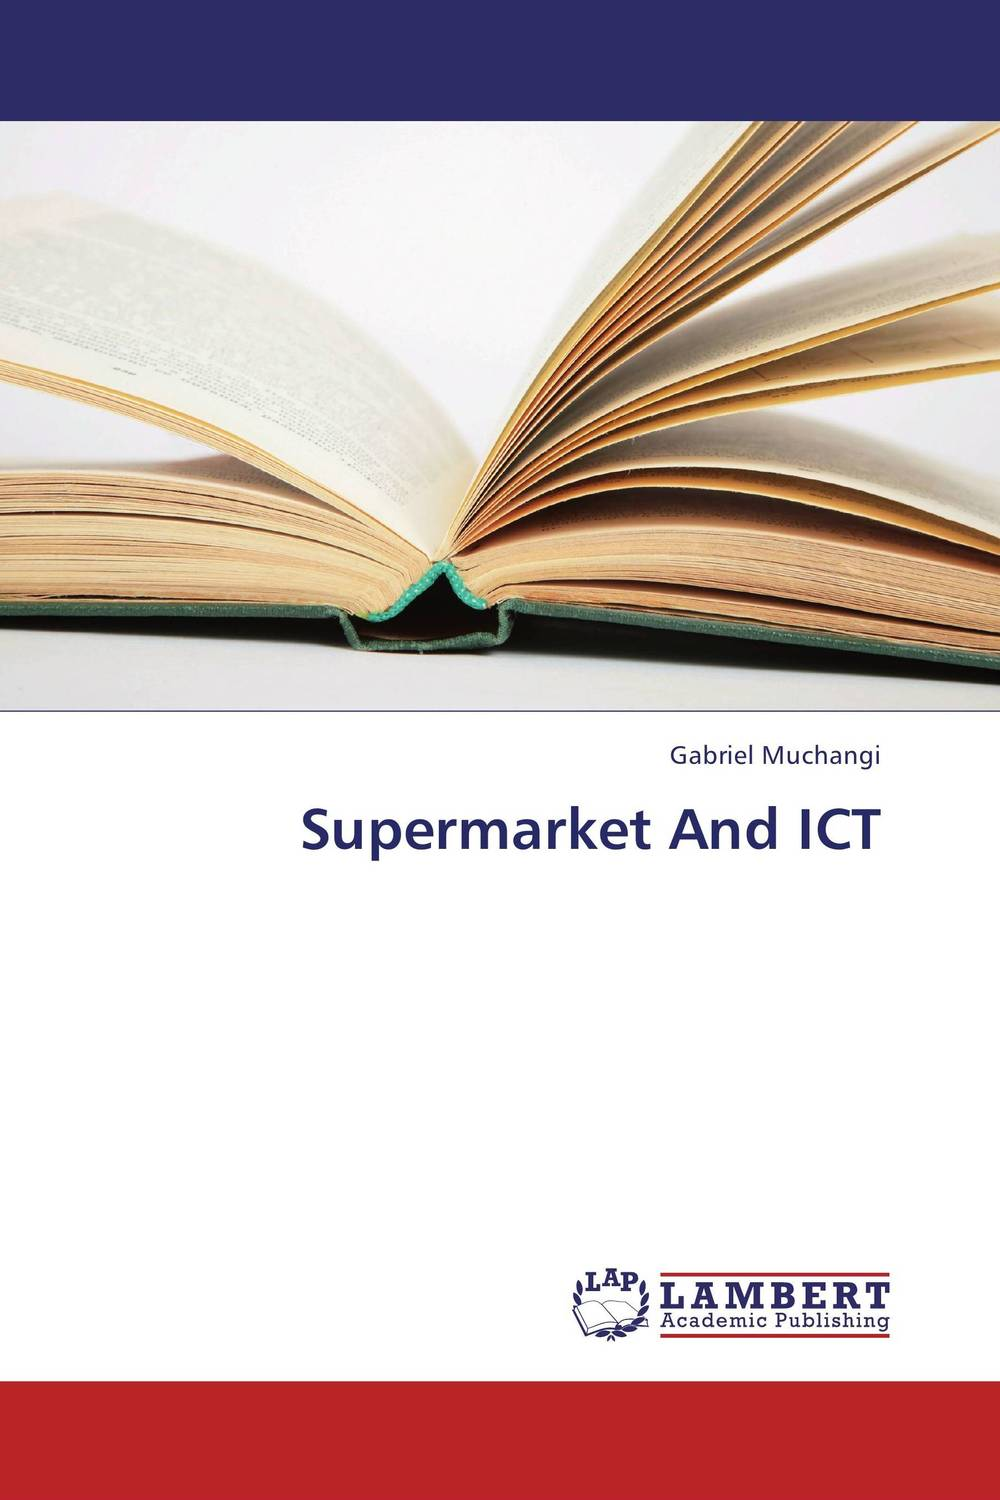 Supermarket And ICT measures of information and their applications to various disciplines